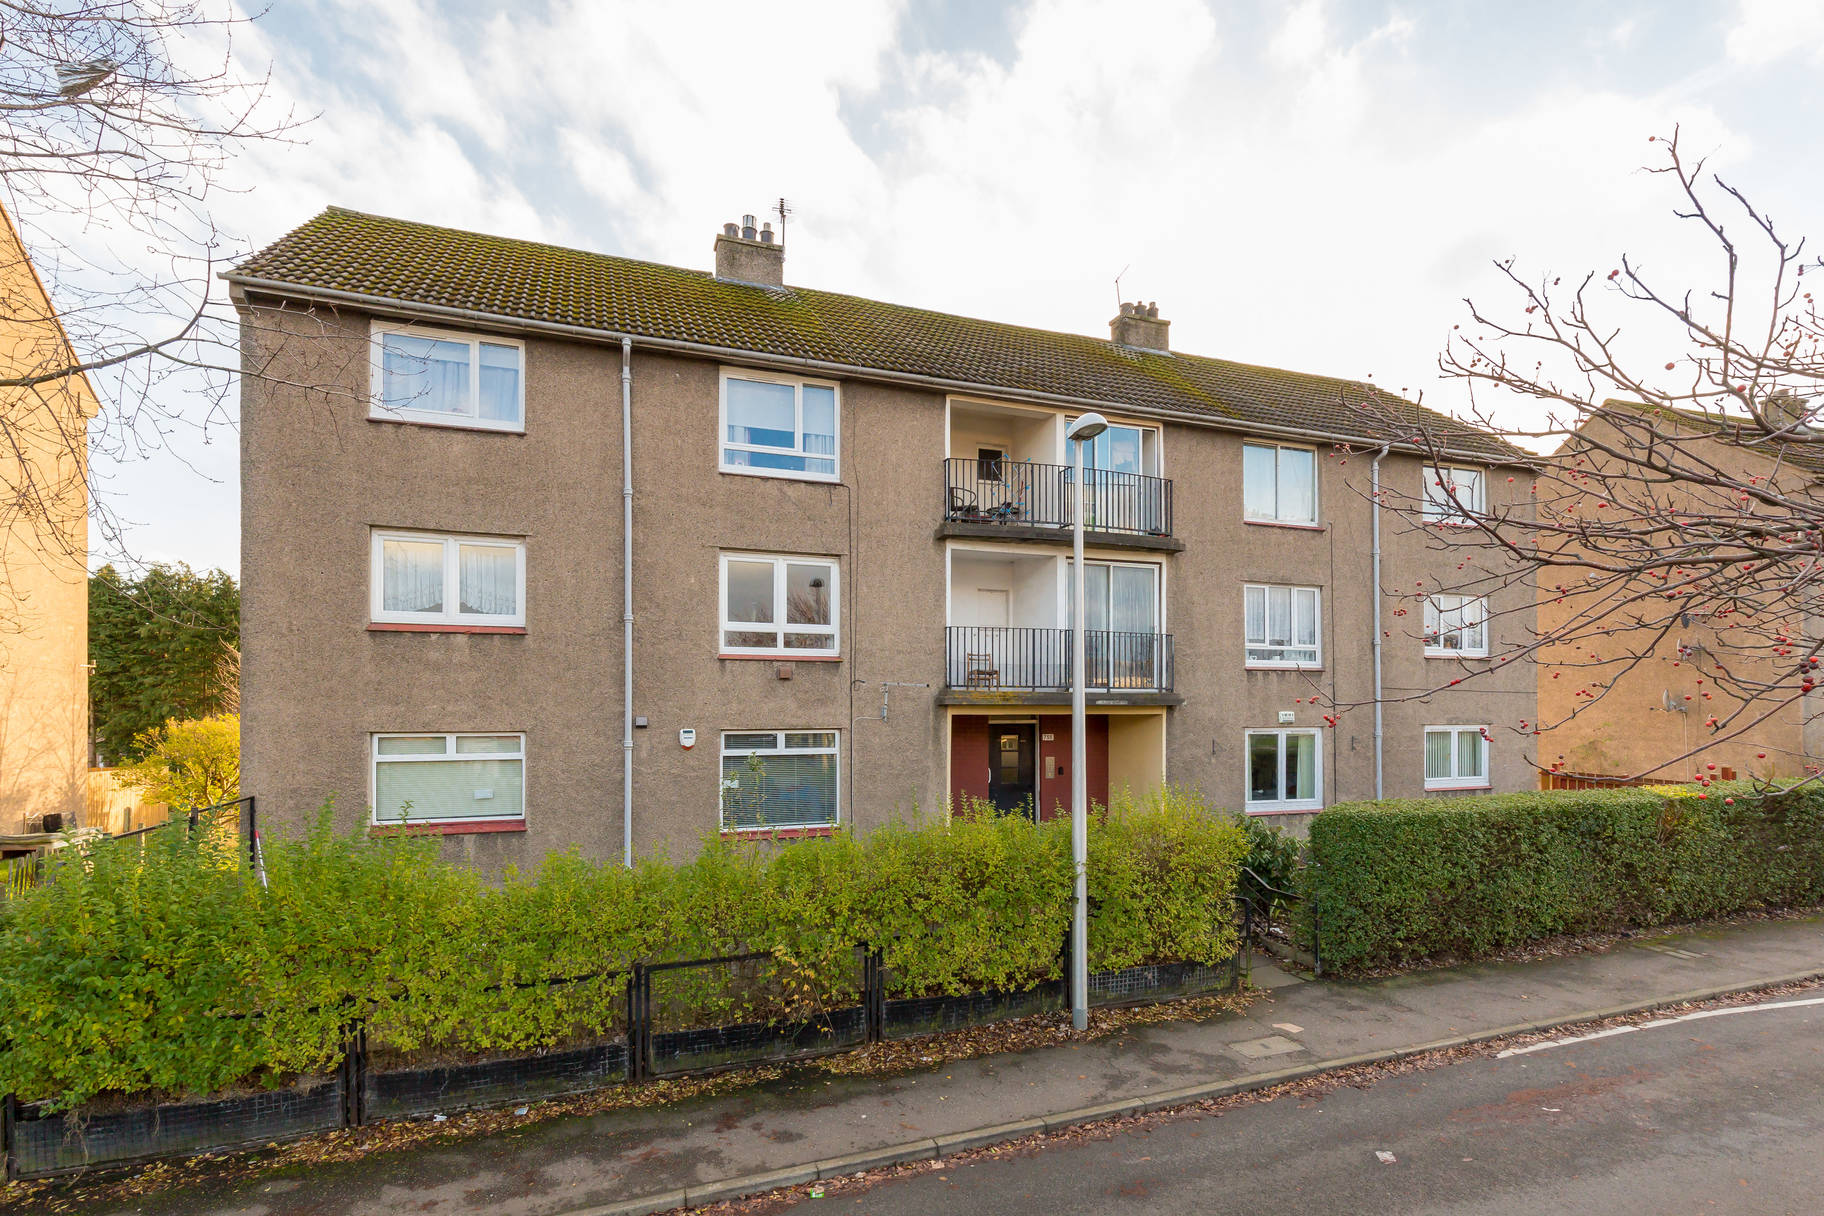 755/3 Ferry Road, Edinburgh, EH4 2UB